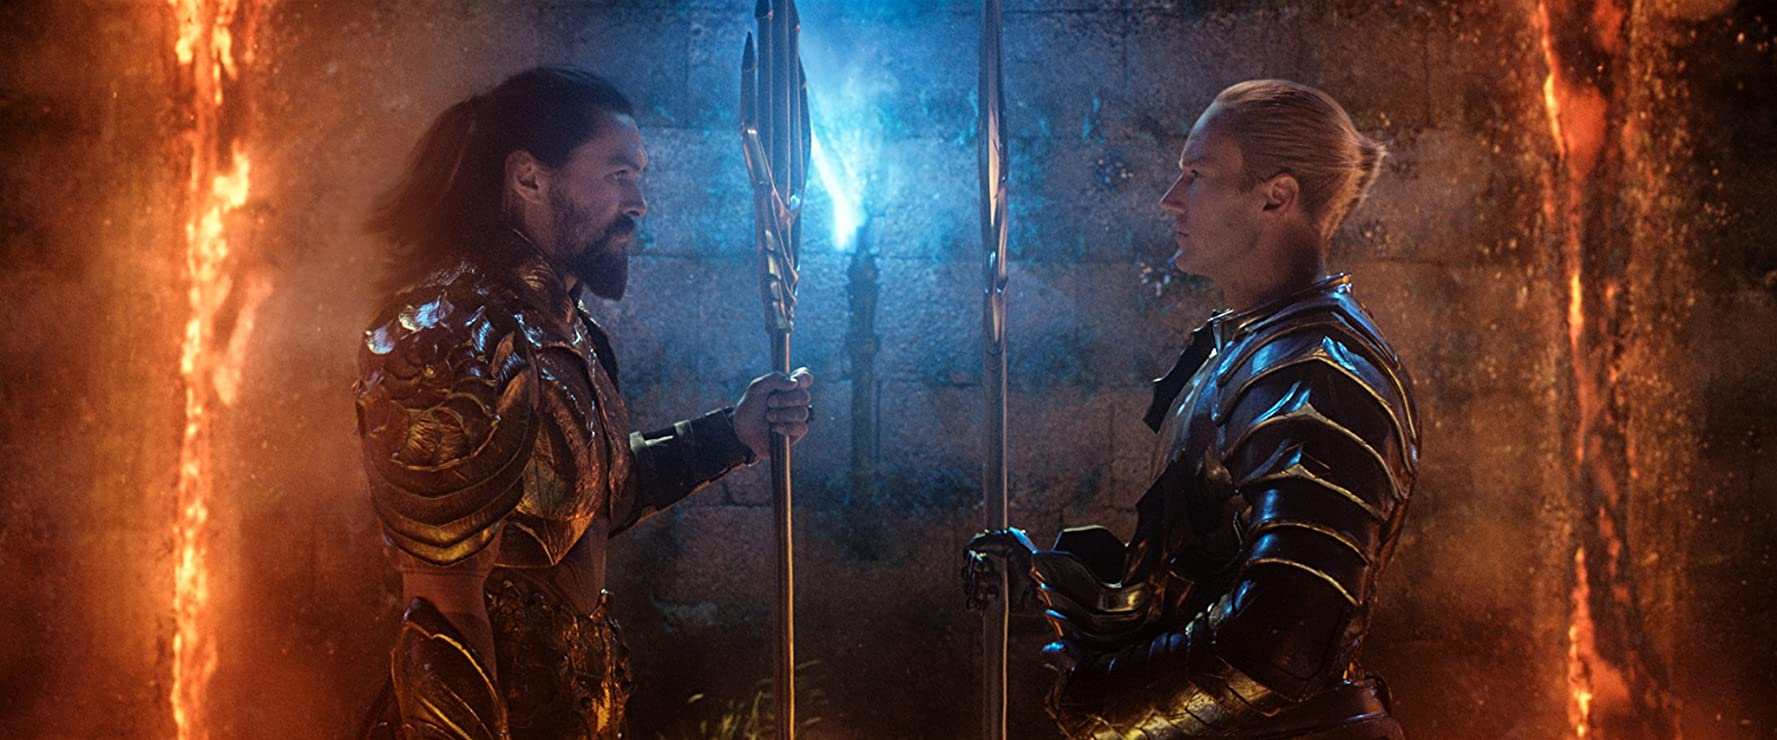 Jason Momoa and Patrick Wilson in Aquaman (2018)